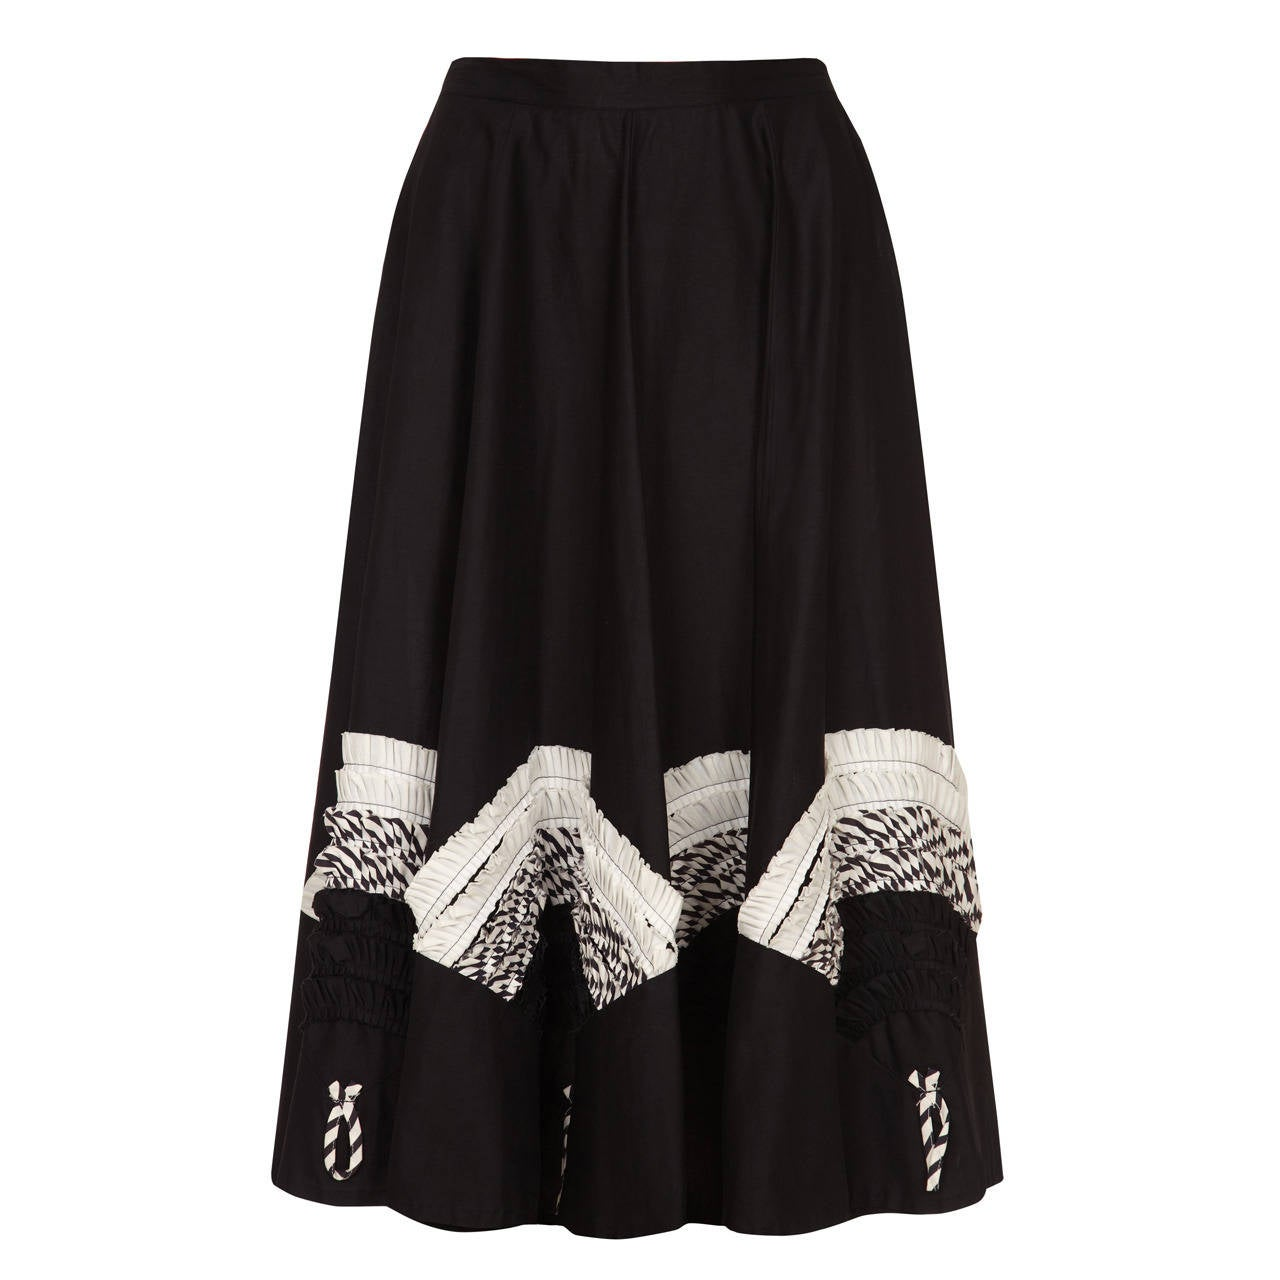 1950s Black Circle Skirt With Monochrome Applique For Sale